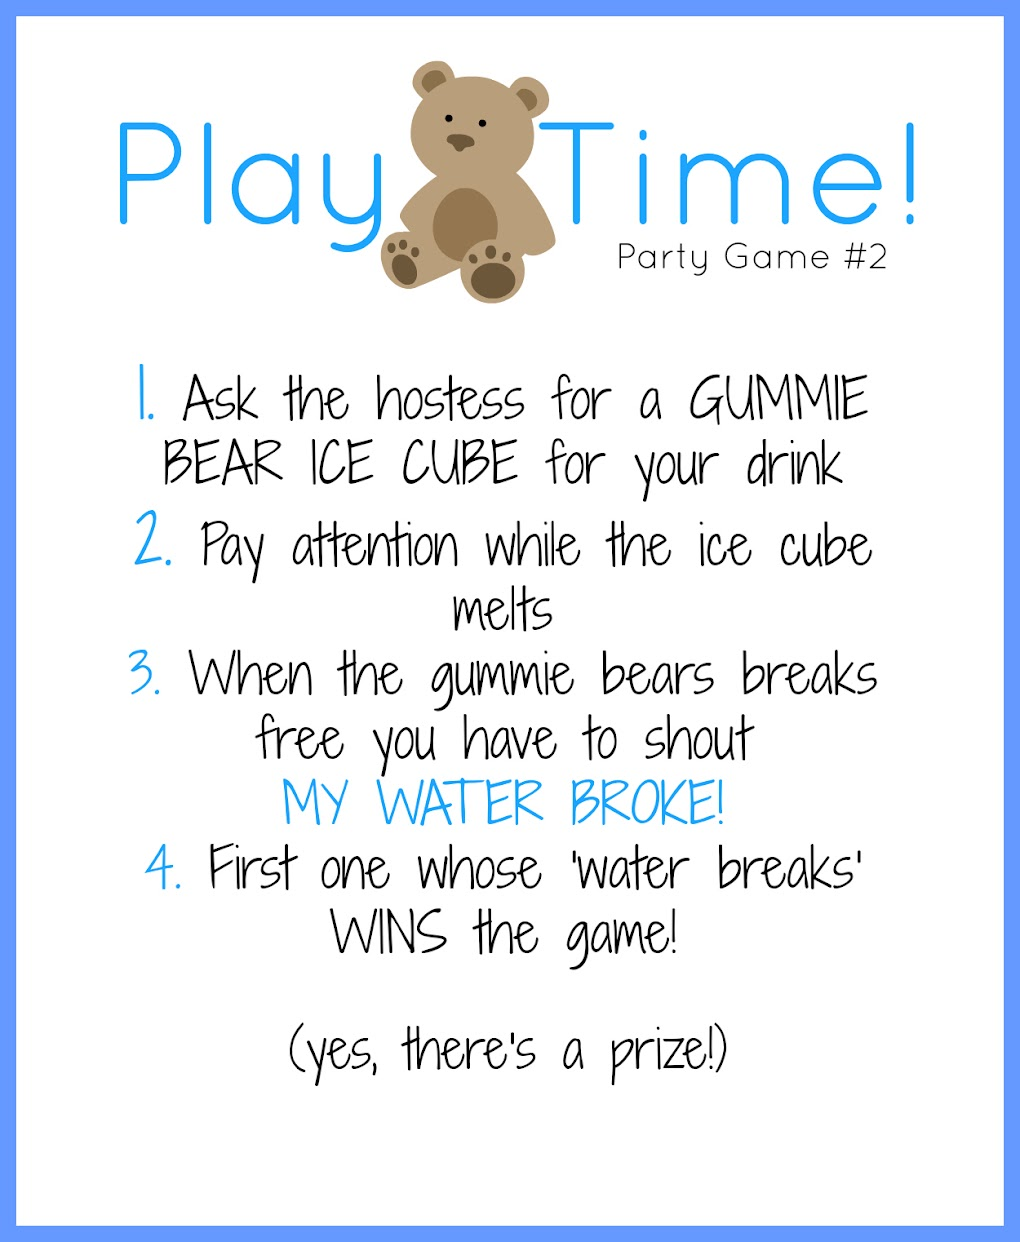 Baby Showers Games For Guys ~ Free printable baby shower games for boys image caption